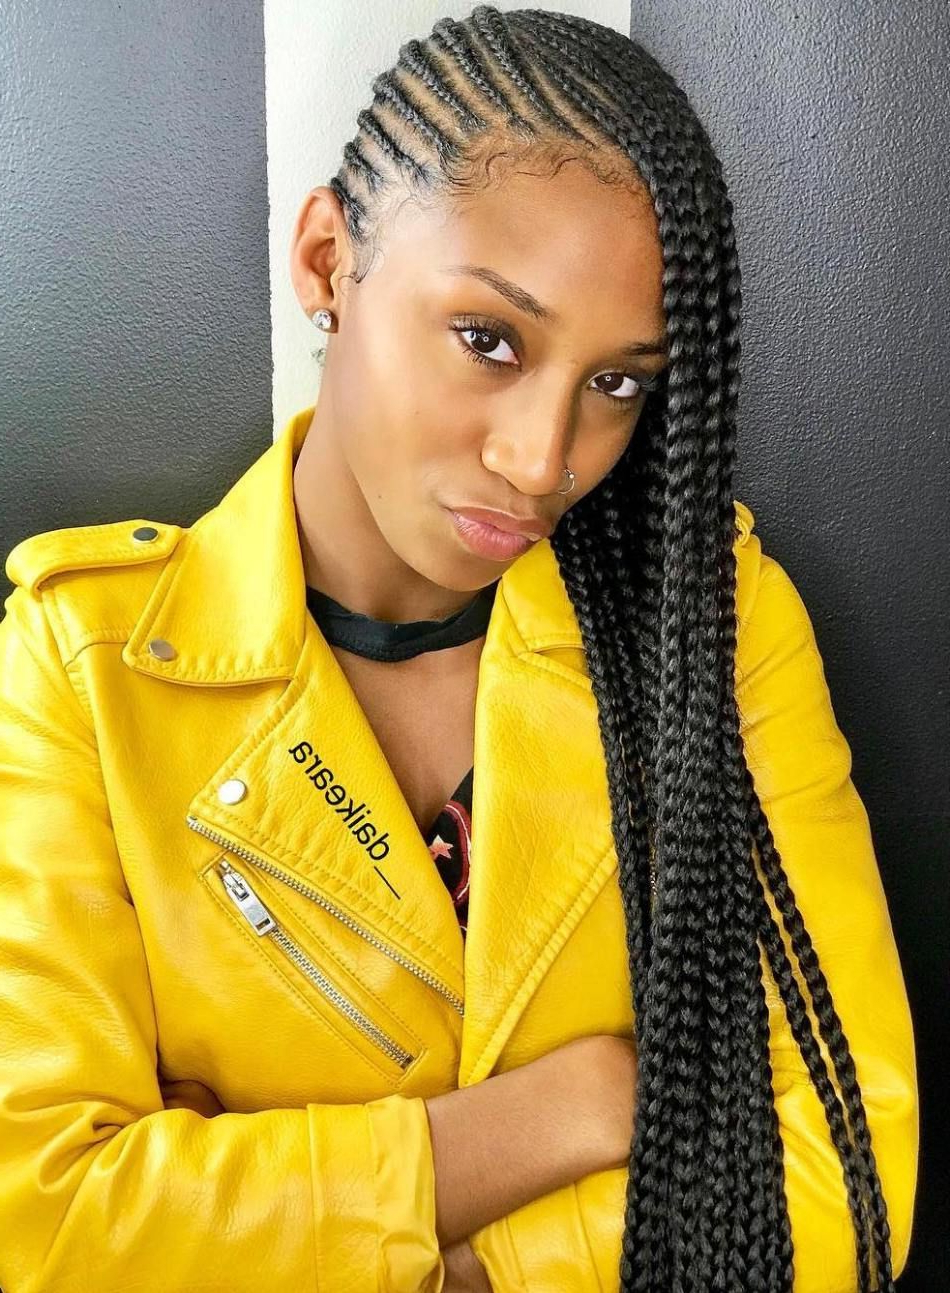 Well Known Thin Lemonade Braided Hairstyles In An Updo Regarding 25 Charming Lemonade Braids To Rock Your Appearance (View 10 of 20)